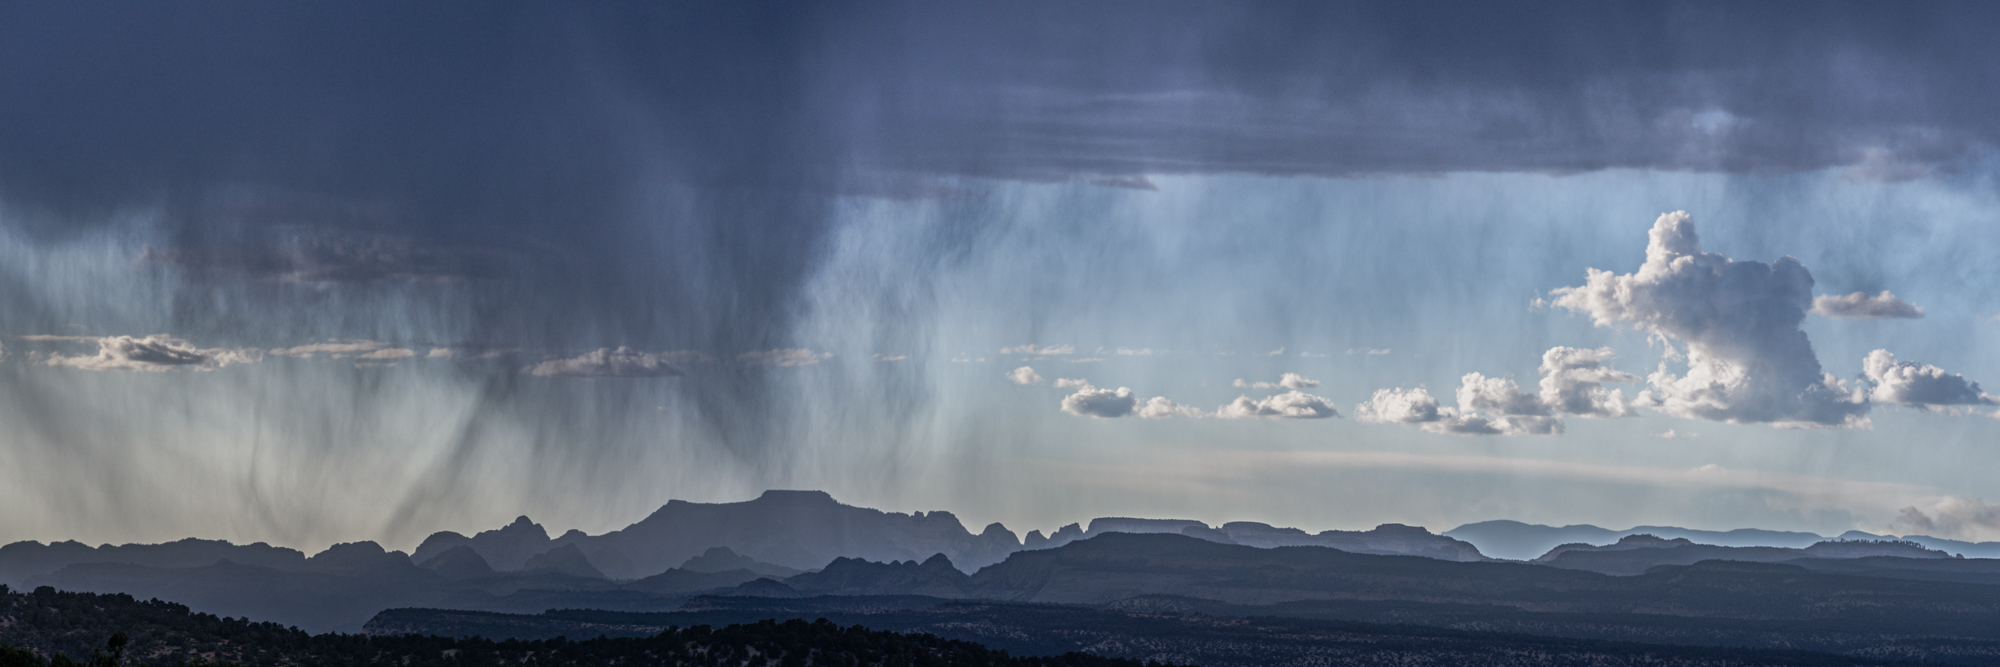 Photography workshop near Zion National Park with a monsoon storm and rain over Zion National Park.